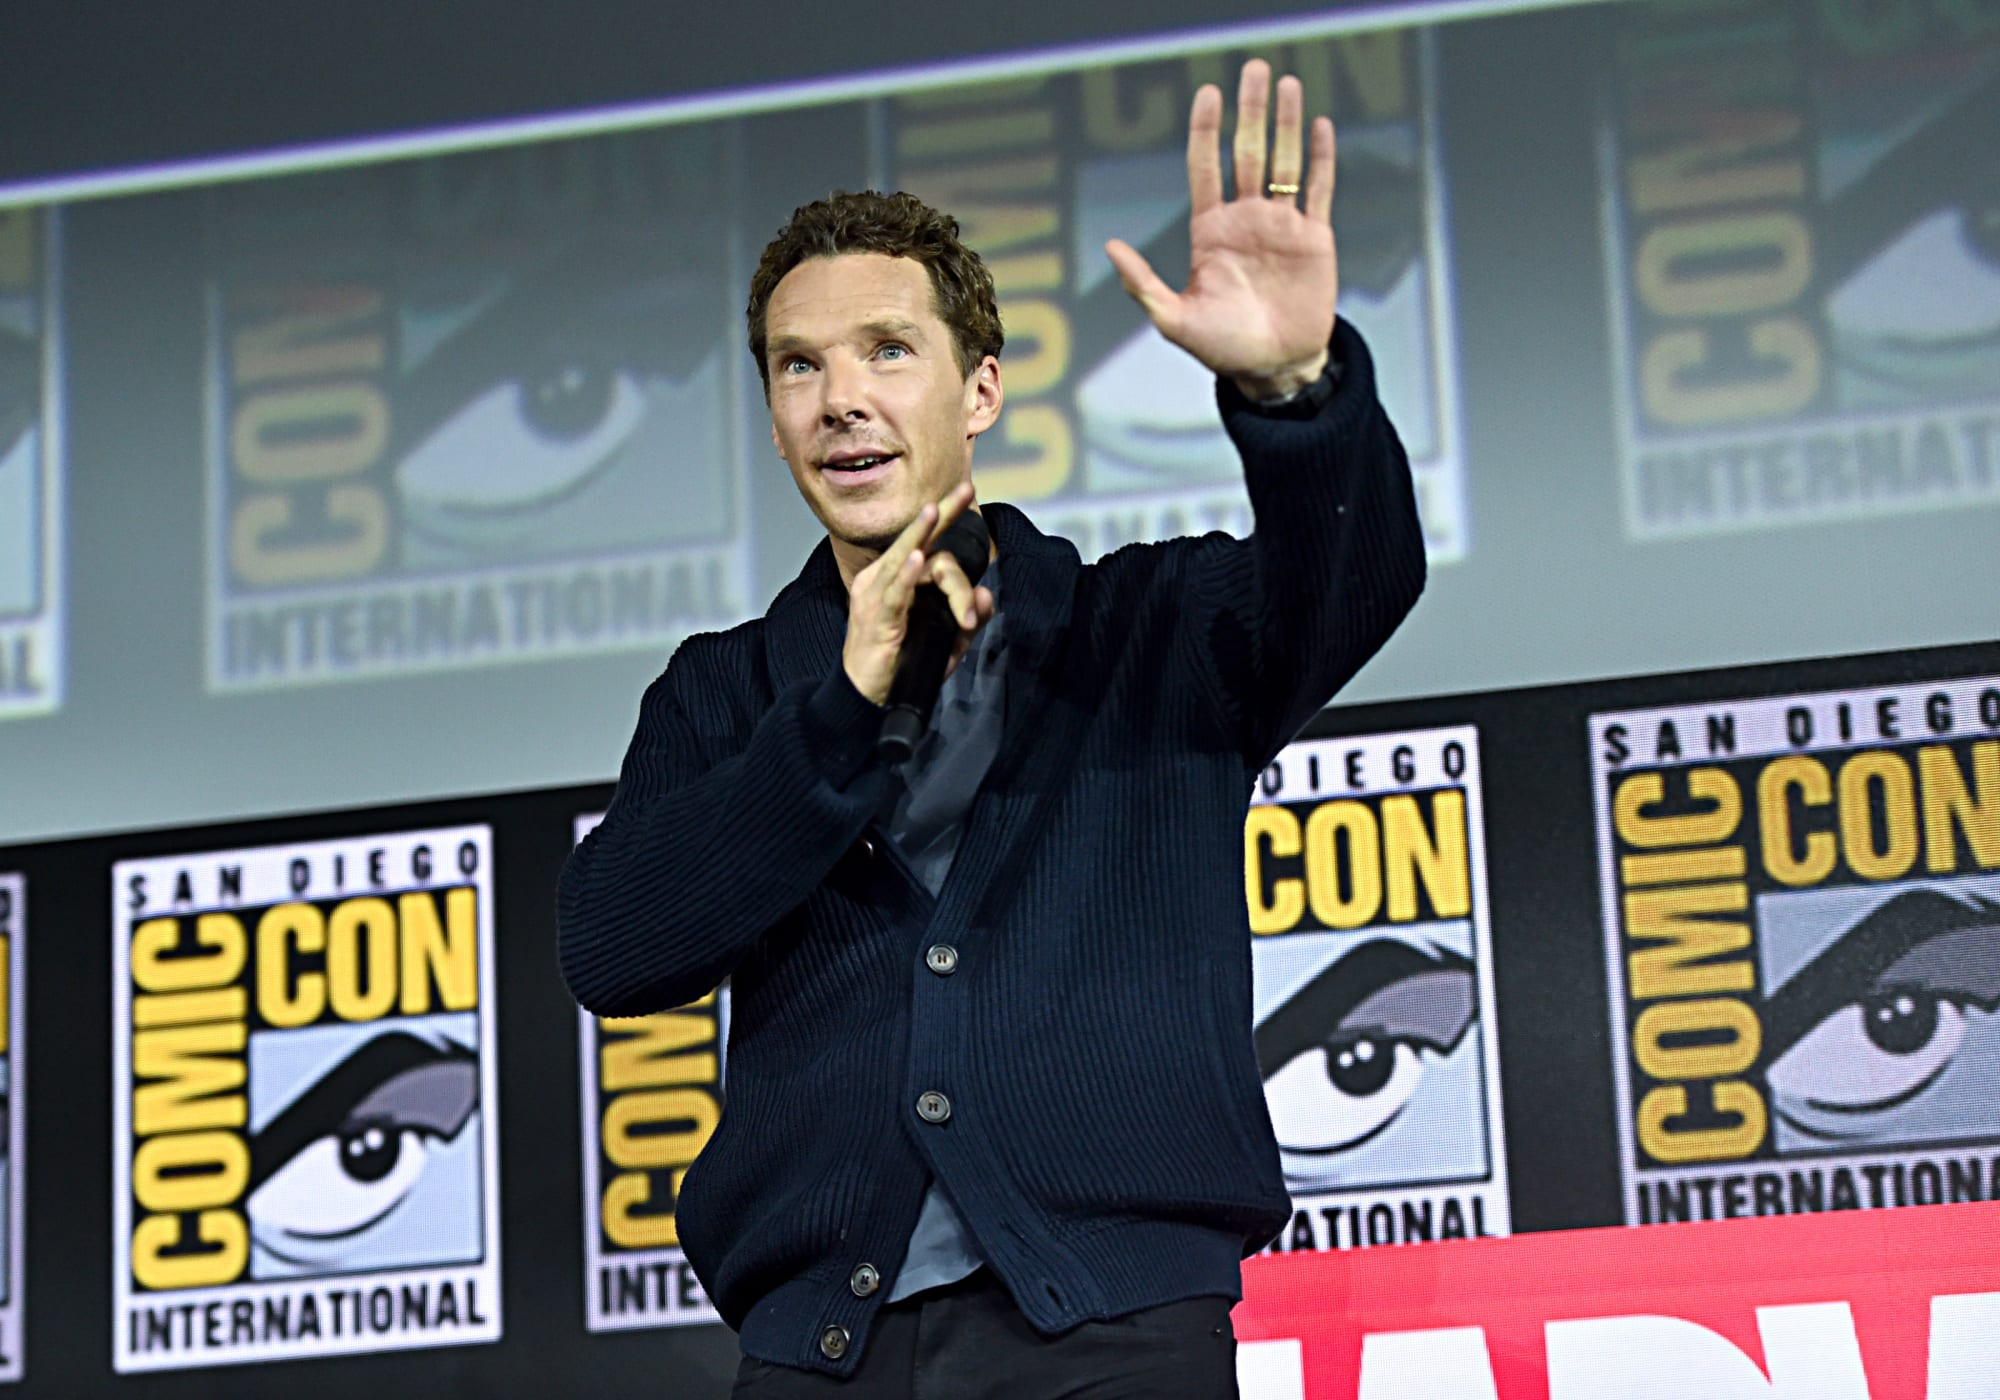 Star Wars: Benedict Cumberbatch wows as Grand Admiral Thrawn in new image